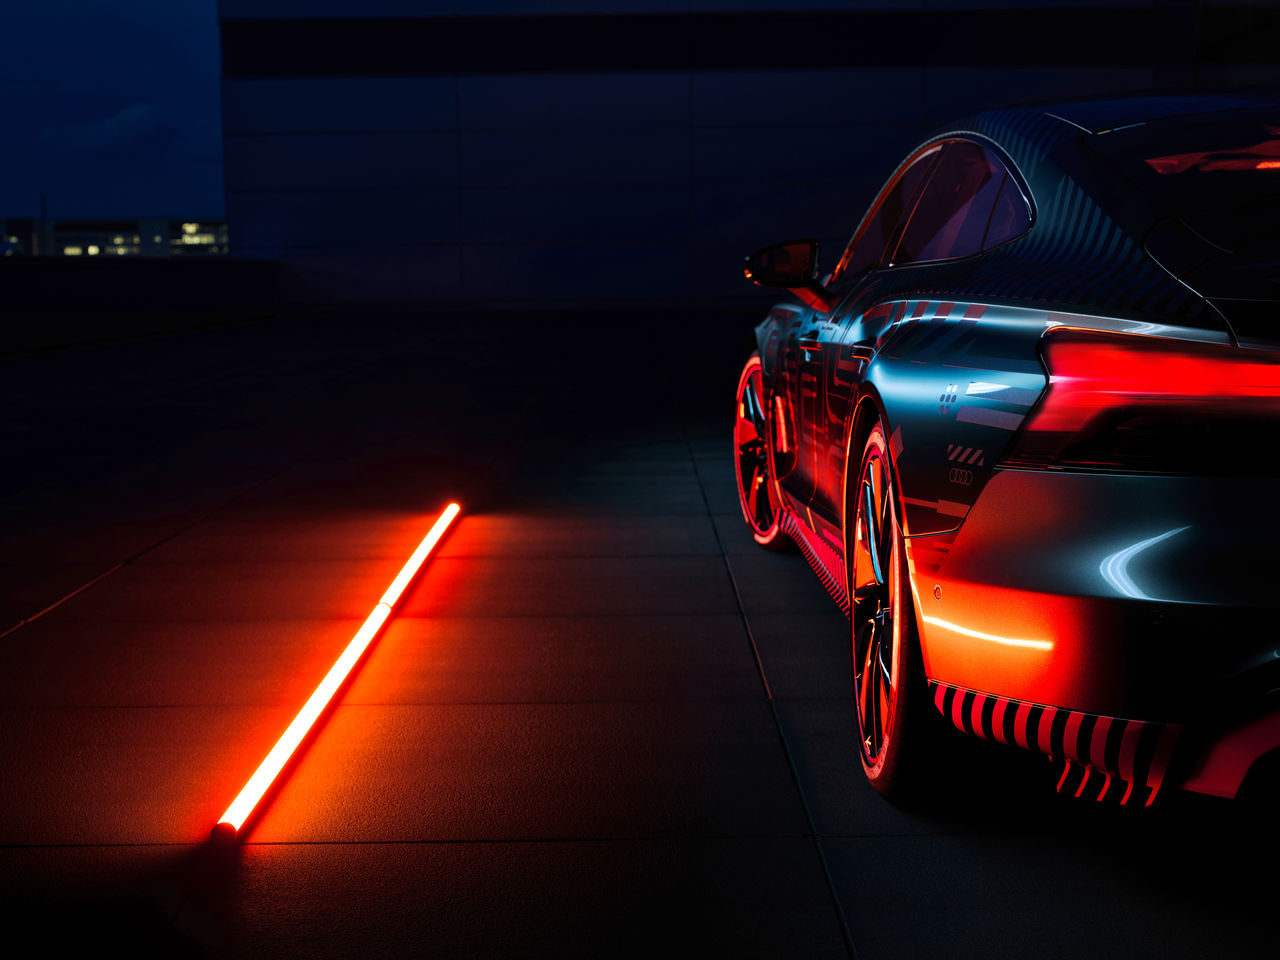 Passion for quality and progressiveness:  ||the new Audi e-tron GT